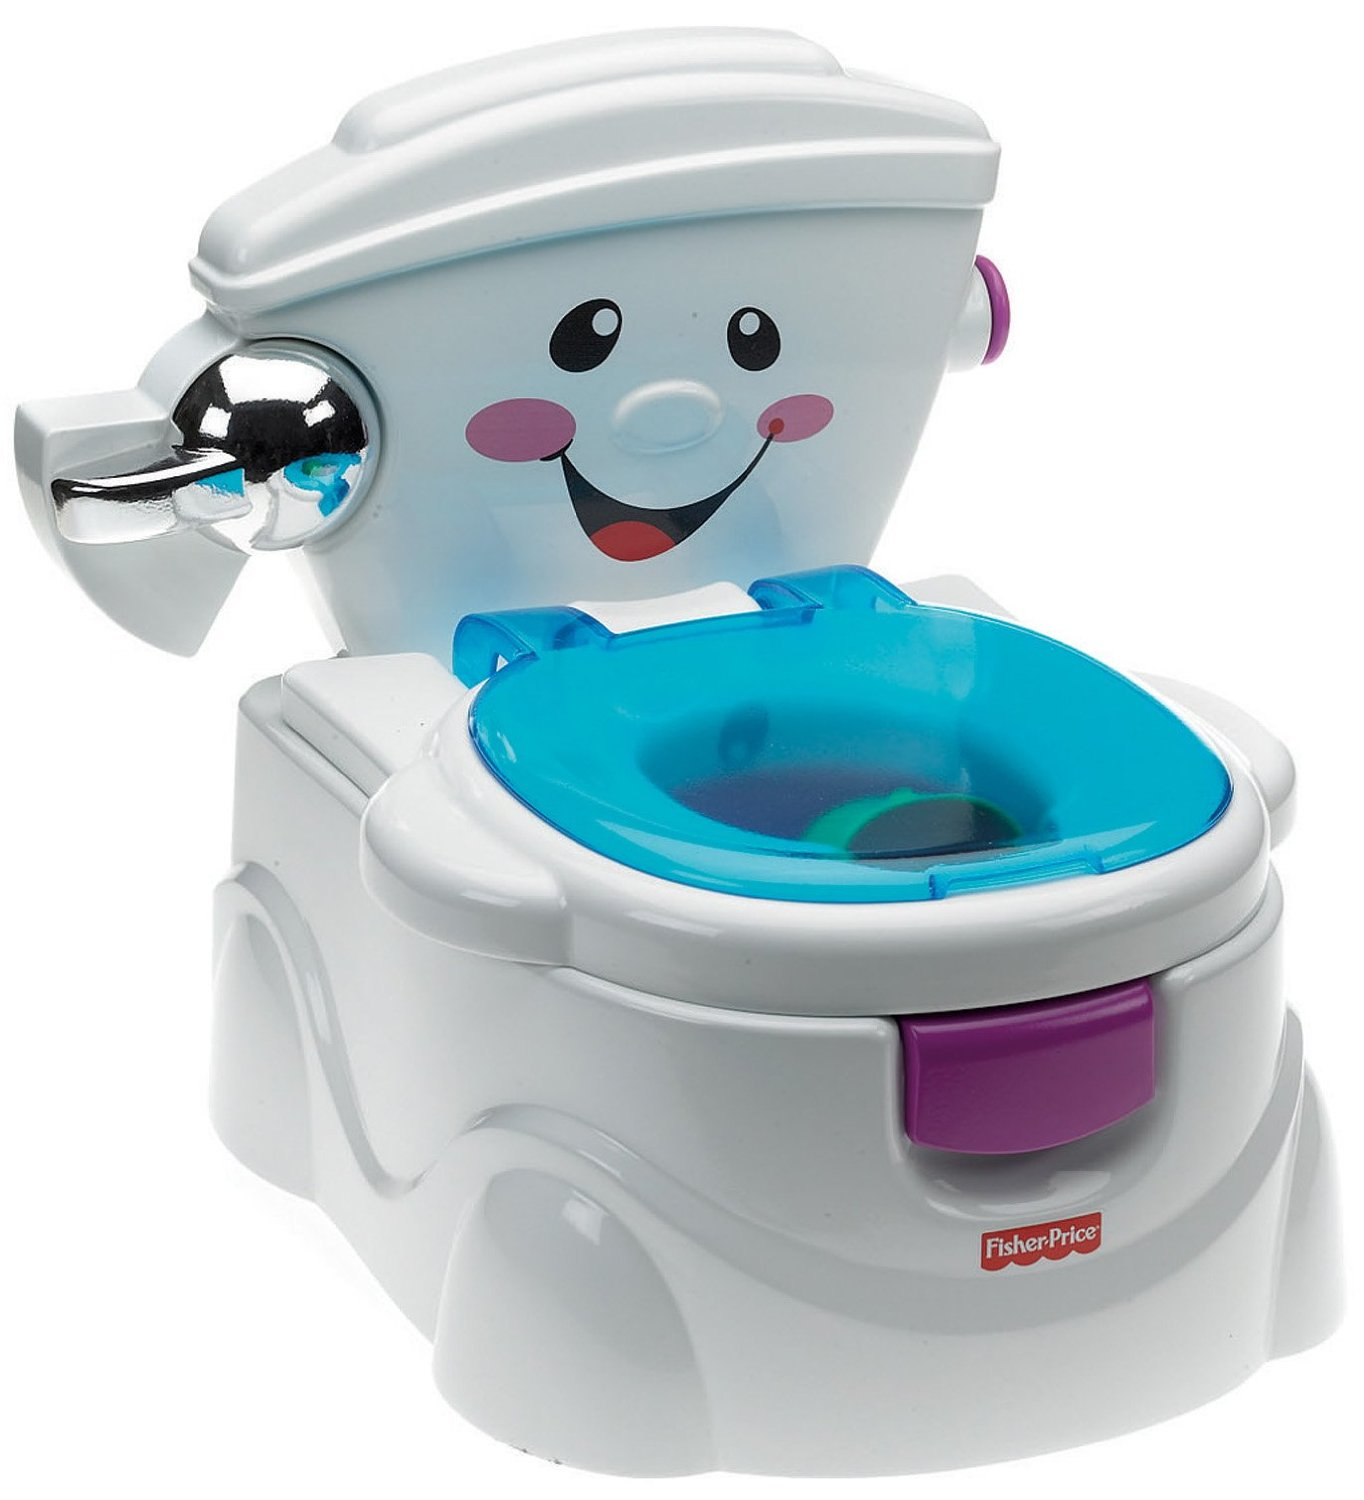 Toy Toilet Flushing Sound : Fisher price my talking potty friend musical learning